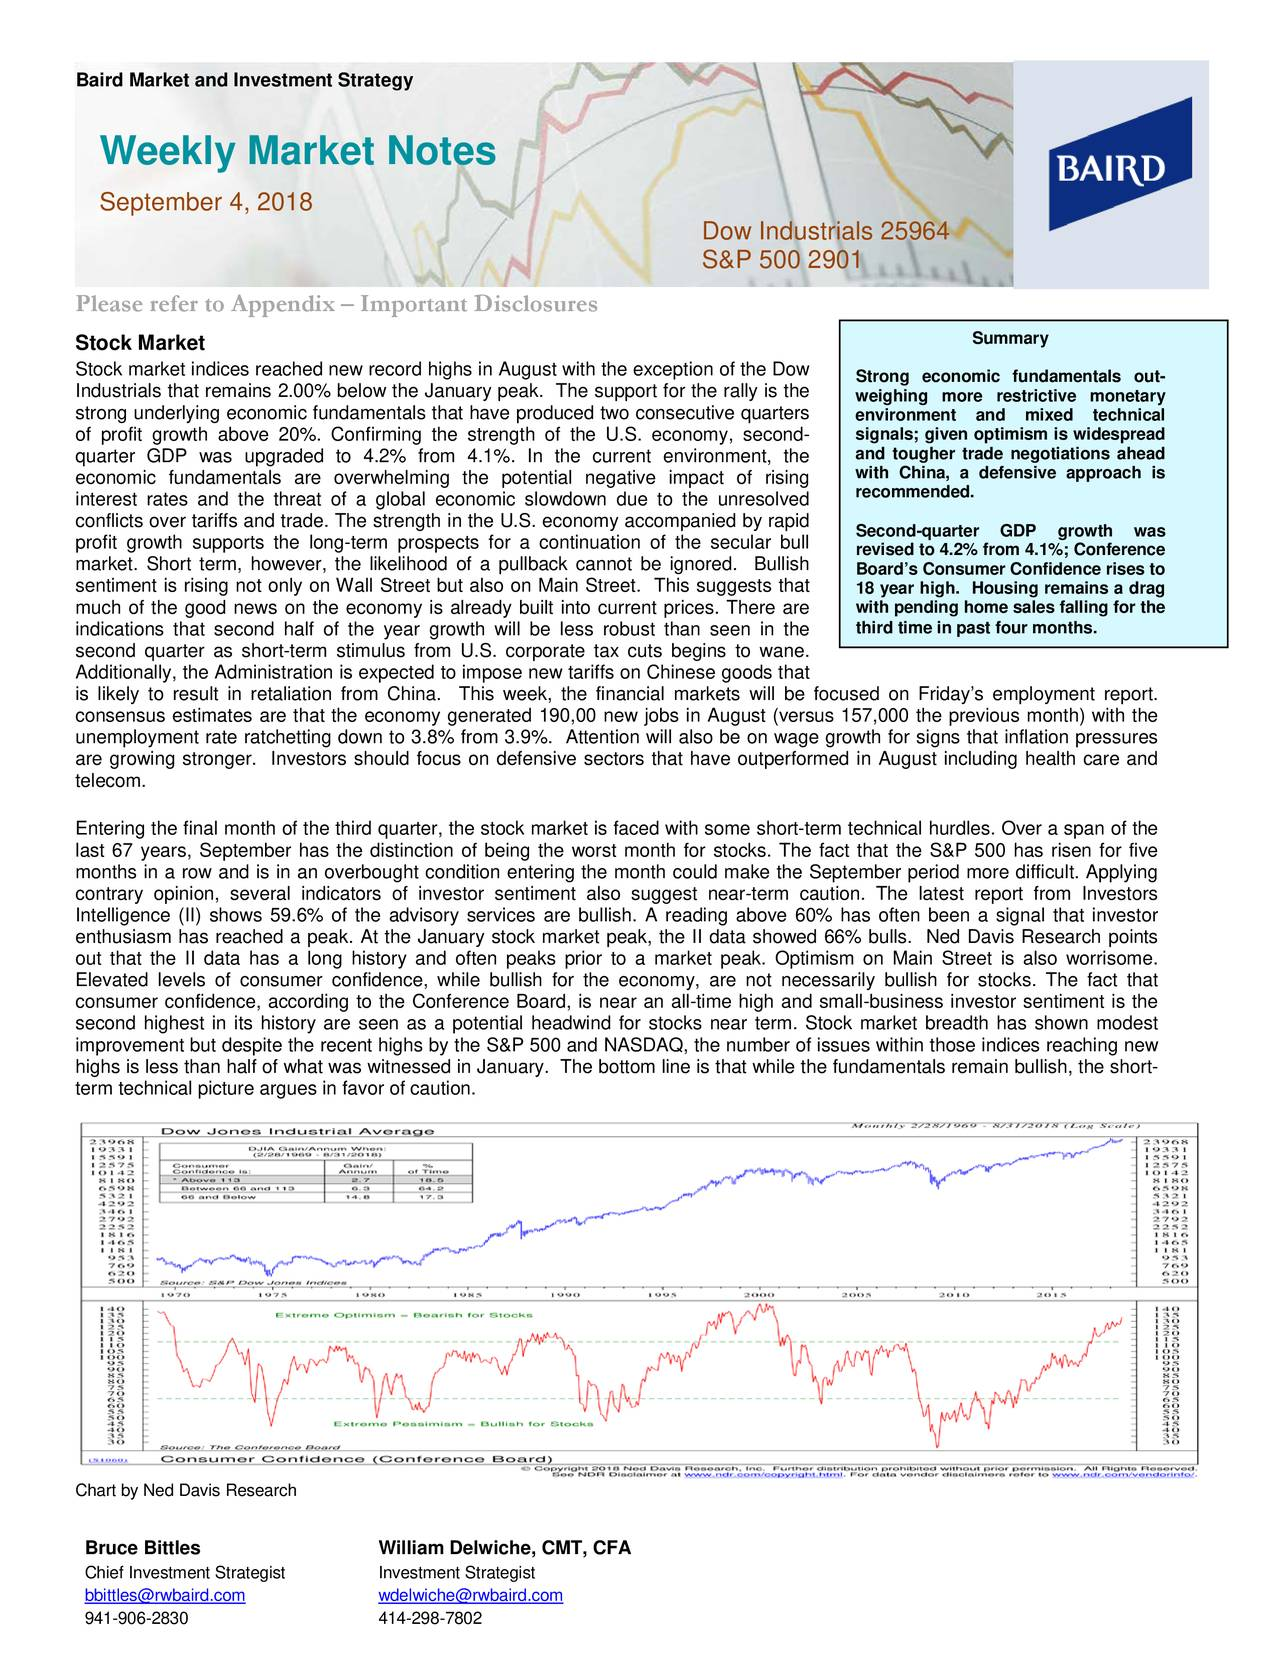 Weekly Market Notes September 4, 2018 Dow Industrials 25964 S&P 500 2901 Please refer to Appendix – Important Disclosures Summary Stock Market Stock market indices reached new record highs in August with the exception of the Dow Strong e conomic fundamentals out- Industrials that remains 2.00% below the January peak. The support for the rally is the weighing more restrictive monetary strong underlying economic fundamentals that have produced two consecutive quarters environment and mixed technical of profit growth above 20%. Confirming the strength of the U.S. economy , second- signals; given optimism is widespread and tougher trade negotiations ahead quarter GDP was upgraded to 4.2% from 4.1%. In the current environment, the with China , a defensive approach is economic fundamentals are overwhelming the potential negative impact of rising recommended. interest rates and the threat of a global economic slowdown due to the unresolved conflicts over tariffs and trade. The strength in the U.S. economy accompanied by rapid Second-quarter GDP growth was profit growth supports the long-term prospects for a continuation of the secular bull market. Short term, however, the likelihood of a pullback cannot be ignored. Bullish revised to 4.2% from 4.1%; Conference sentiment is rising not only on Wall Street but also on Main Street. This suggests that Board's Consumer Confidence rises to 18 year high. Housing remains a drag much of the good news on the economy is already built into current prices. There are with pending home sales falling for the indications that second half of the year growth will be less robust than seen in the third time in past four months. second quarter as short -term stimulus f rom U.S. corporate tax cuts begins to wane. Additionally, the Administration is expected to impose new tariffs on Chinese goods that is likely to result in retaliation from China. This week, the financial markets will be focused on Friday's employment report. consensus estimates a